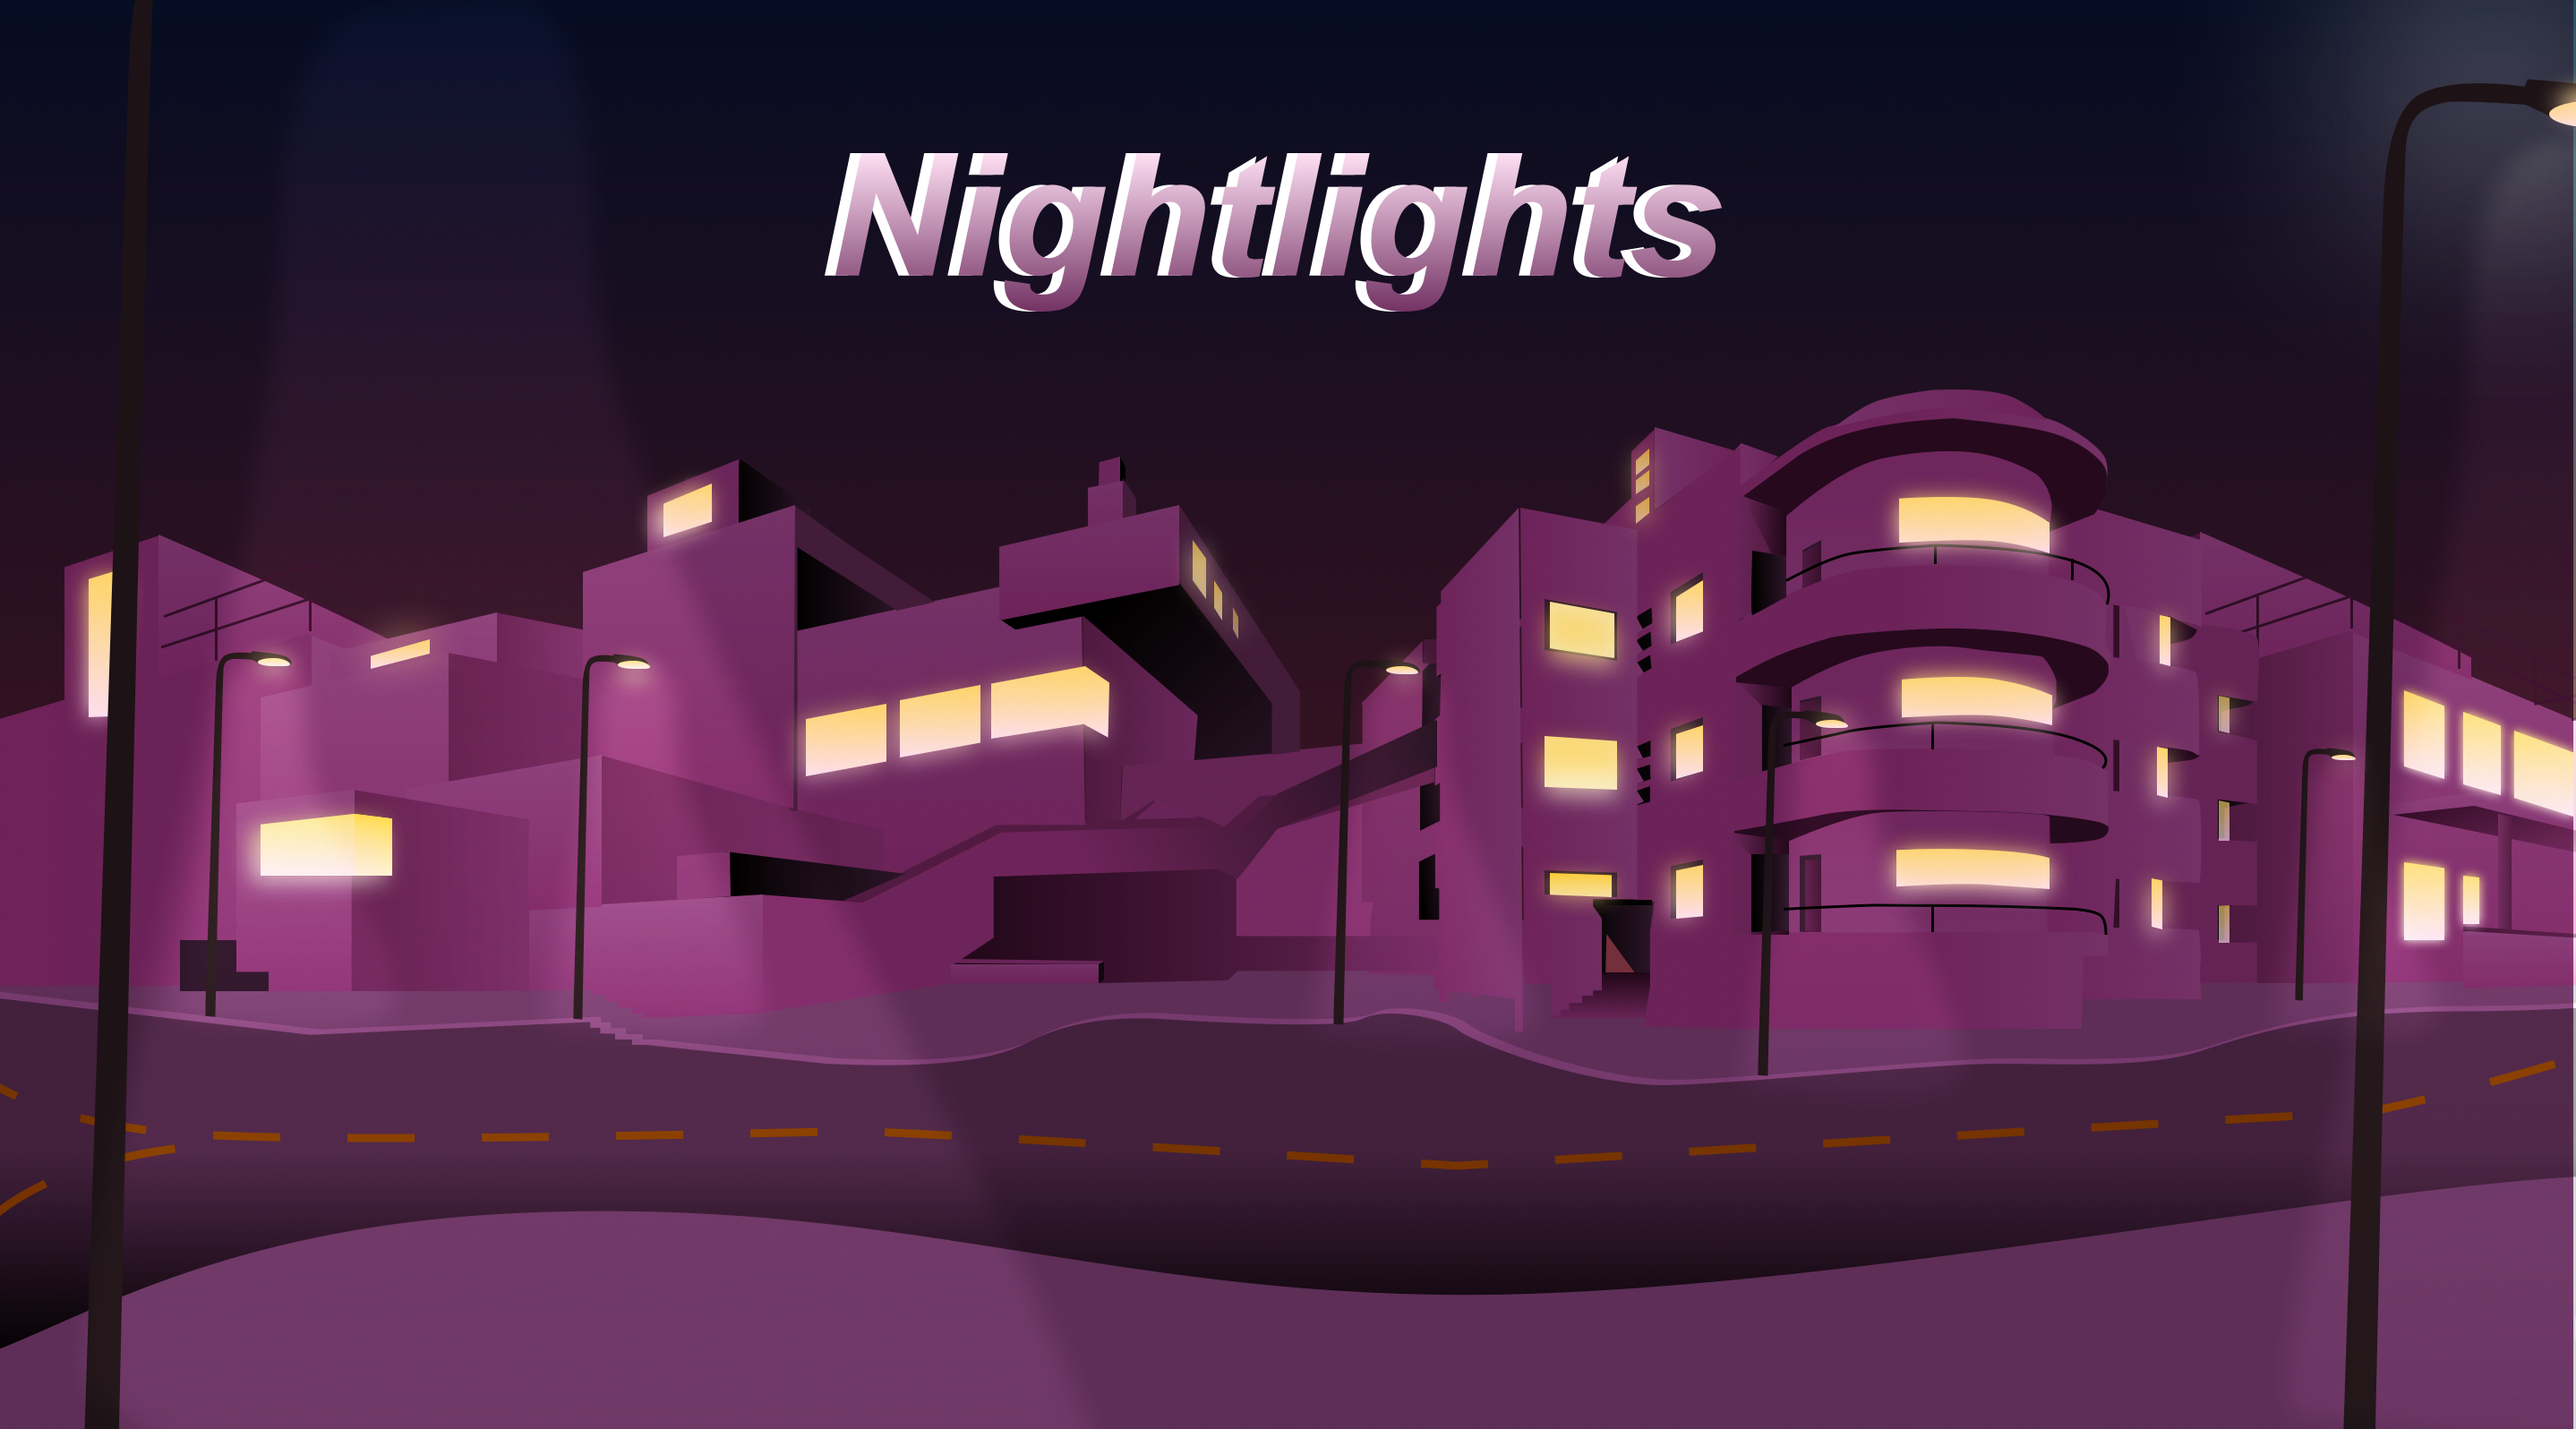 nightlights